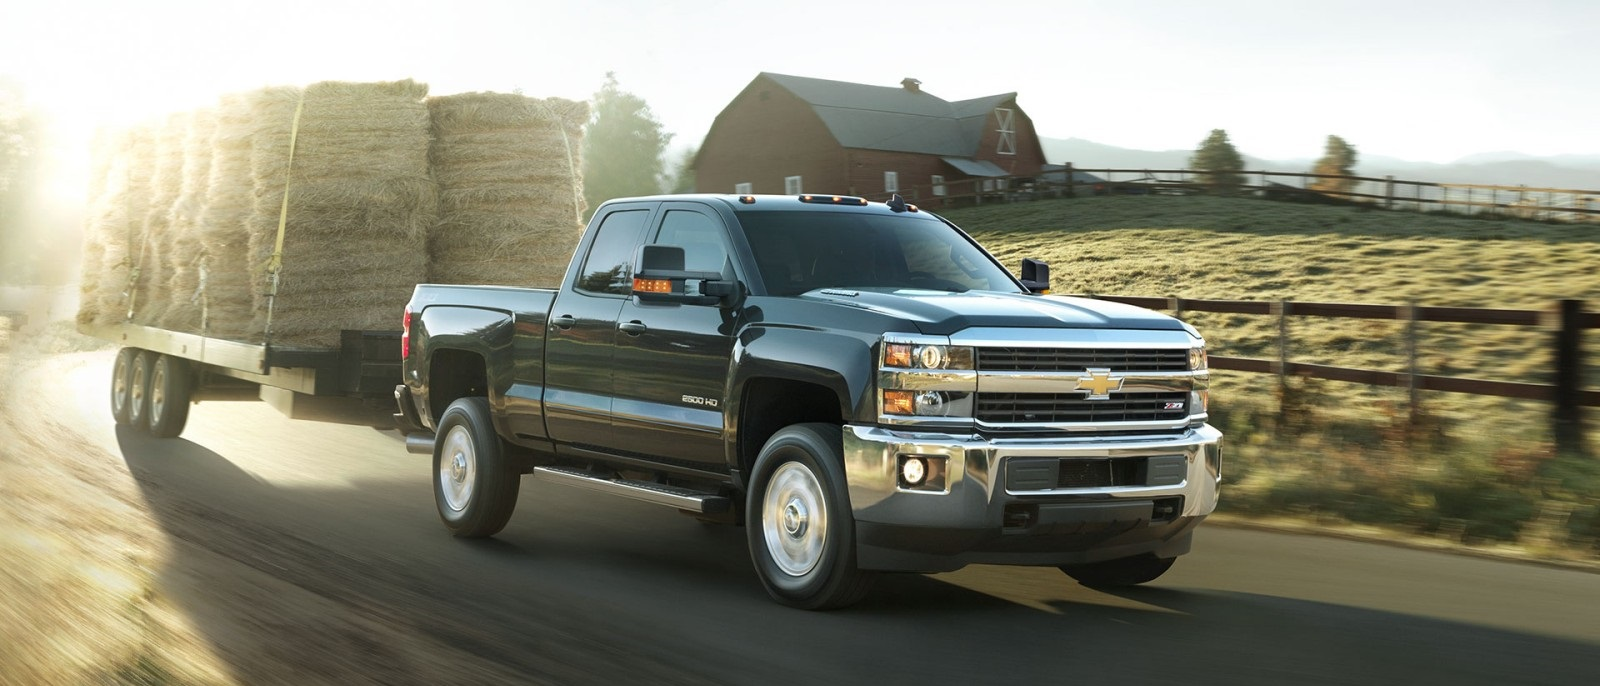 2014 chevy silverado truck bed sizes autos post. Black Bedroom Furniture Sets. Home Design Ideas